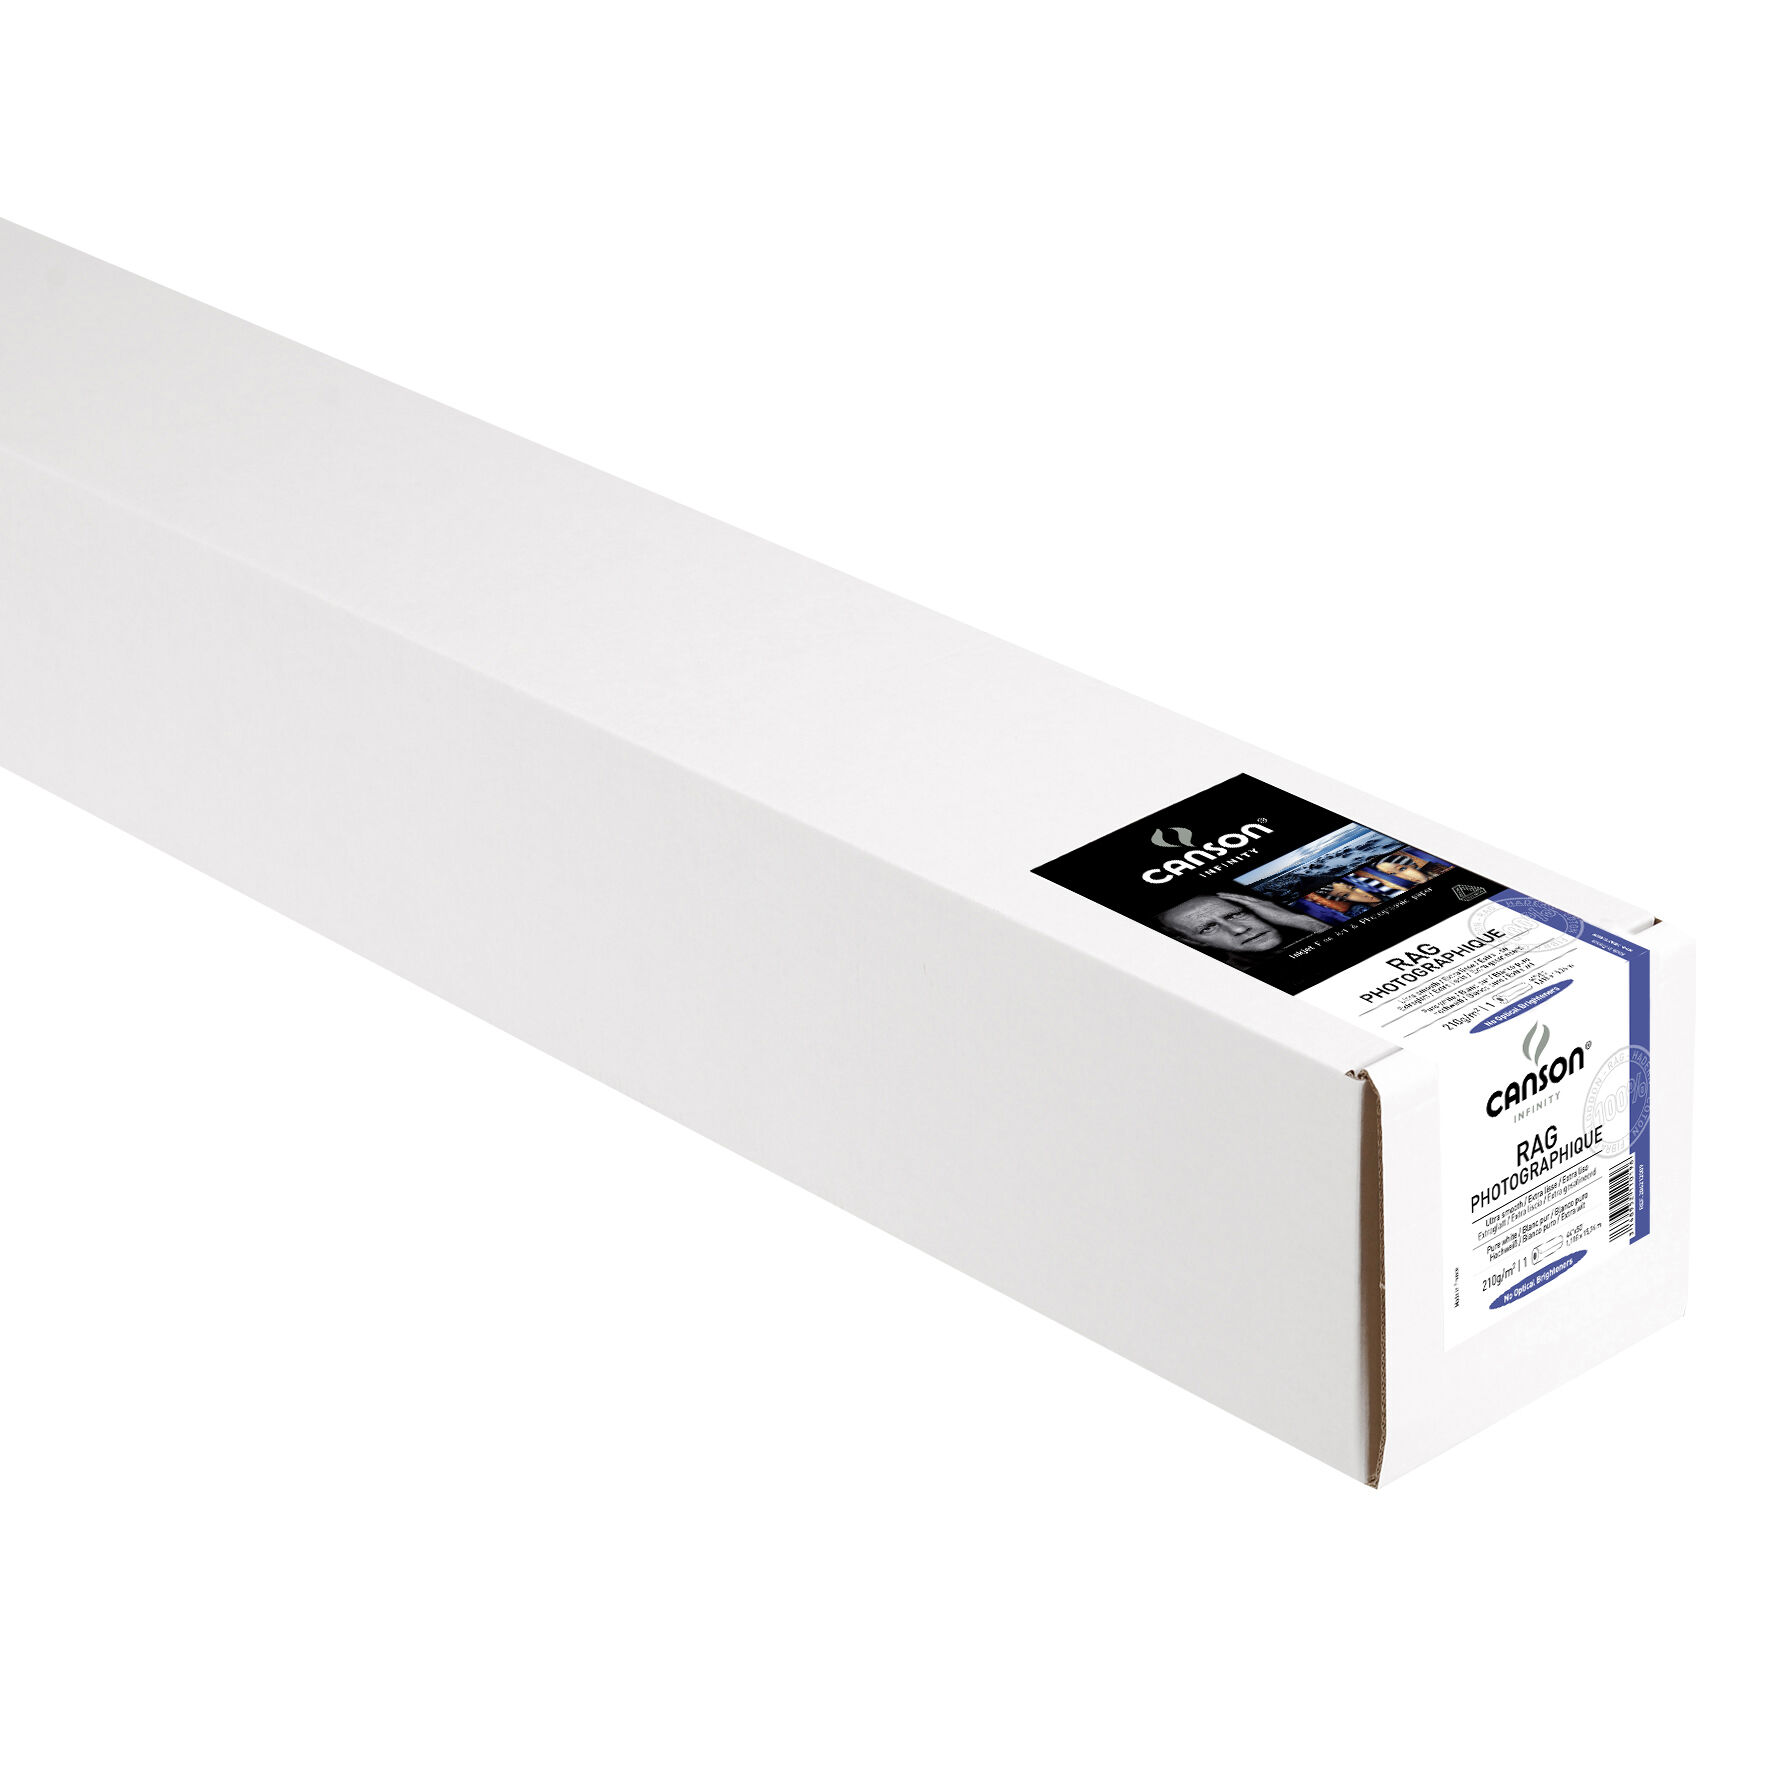 "Canson Rag Photographique Rulle 44"" x 15,2m 210gr"